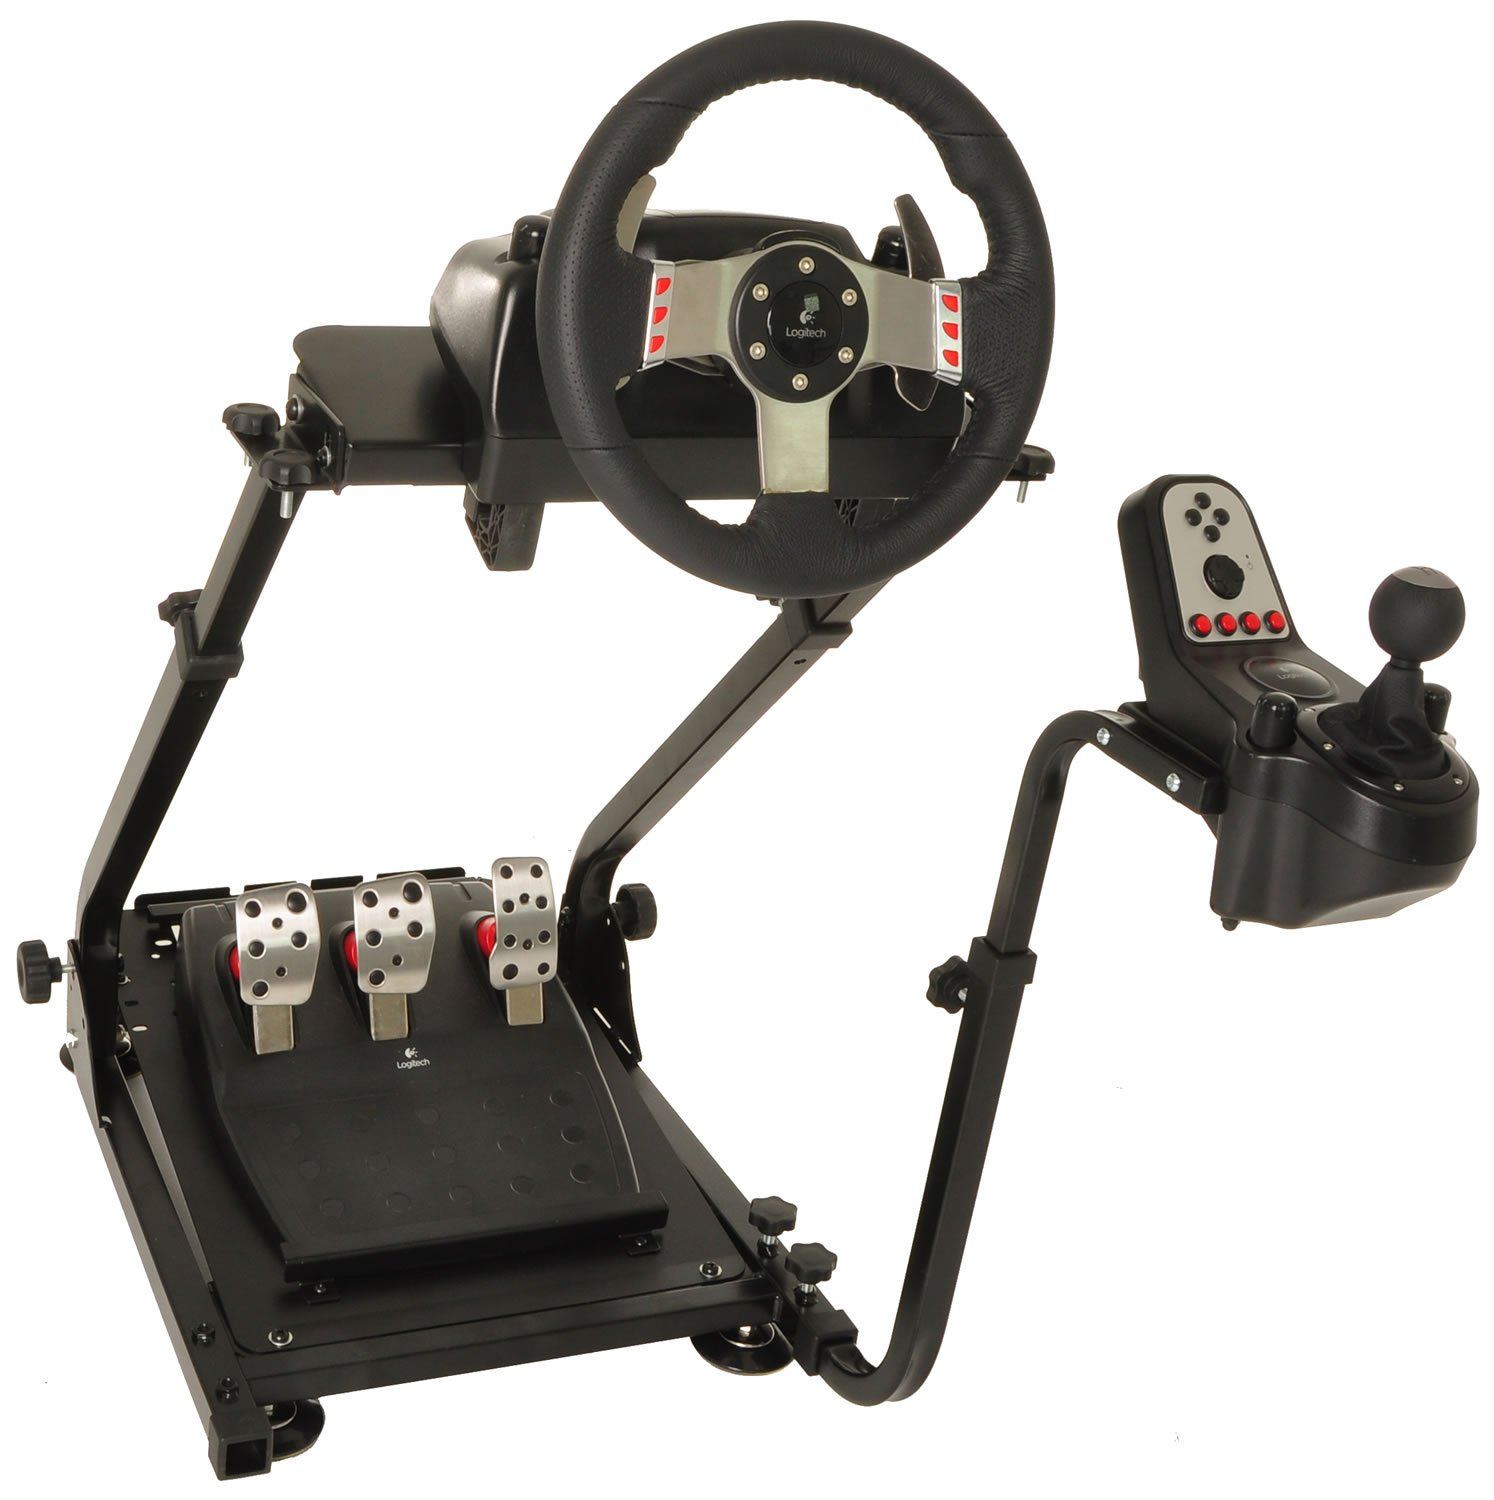 e15b585819e Amazon.com: Conquer Racing Simulator Cockpit Driving Gaming Wheel Stand and  Gear Shifter Mount: Kitchen & Dining